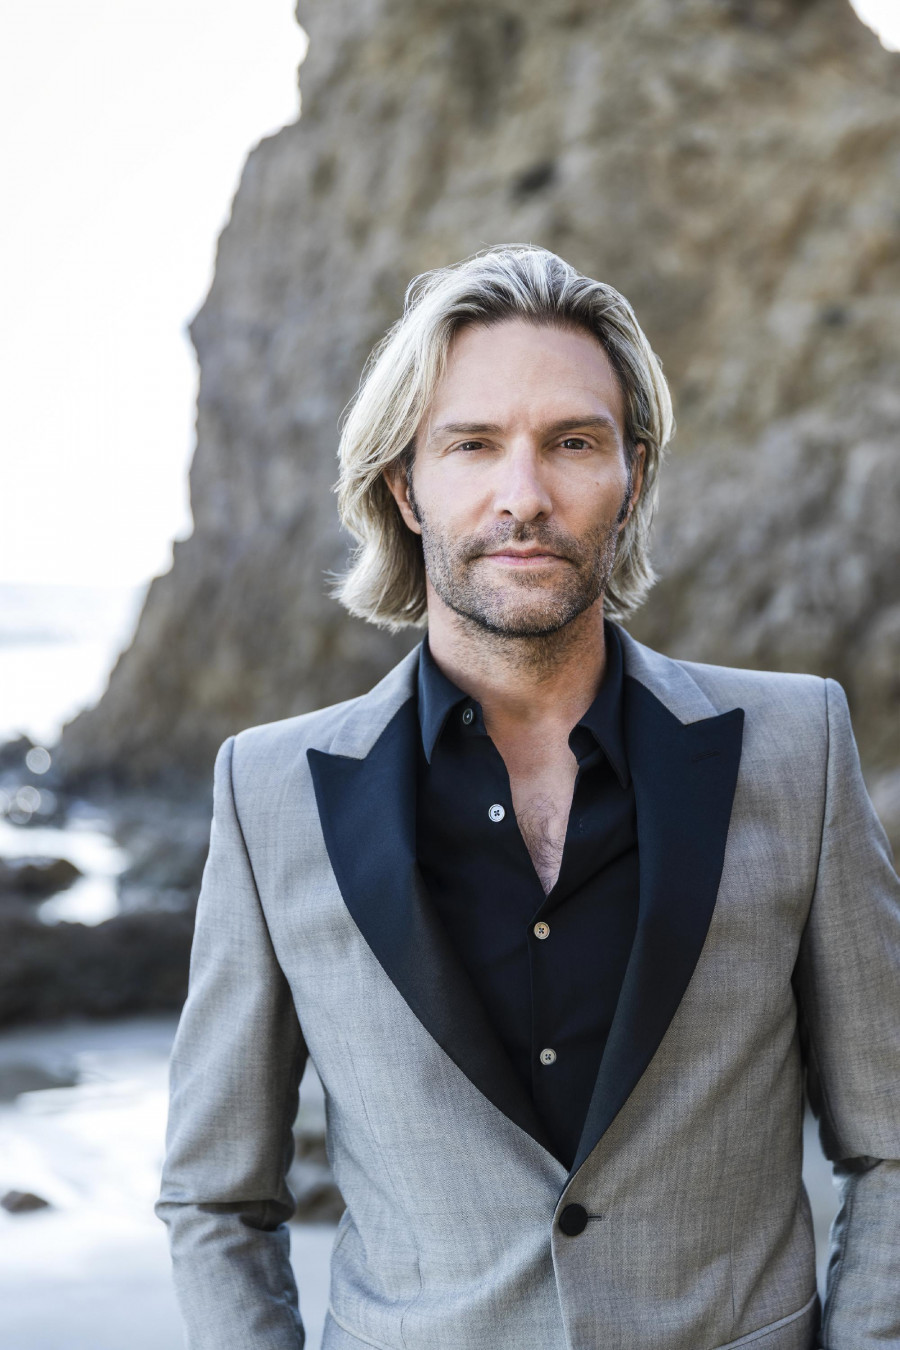 Lecture by Eric Whitacre